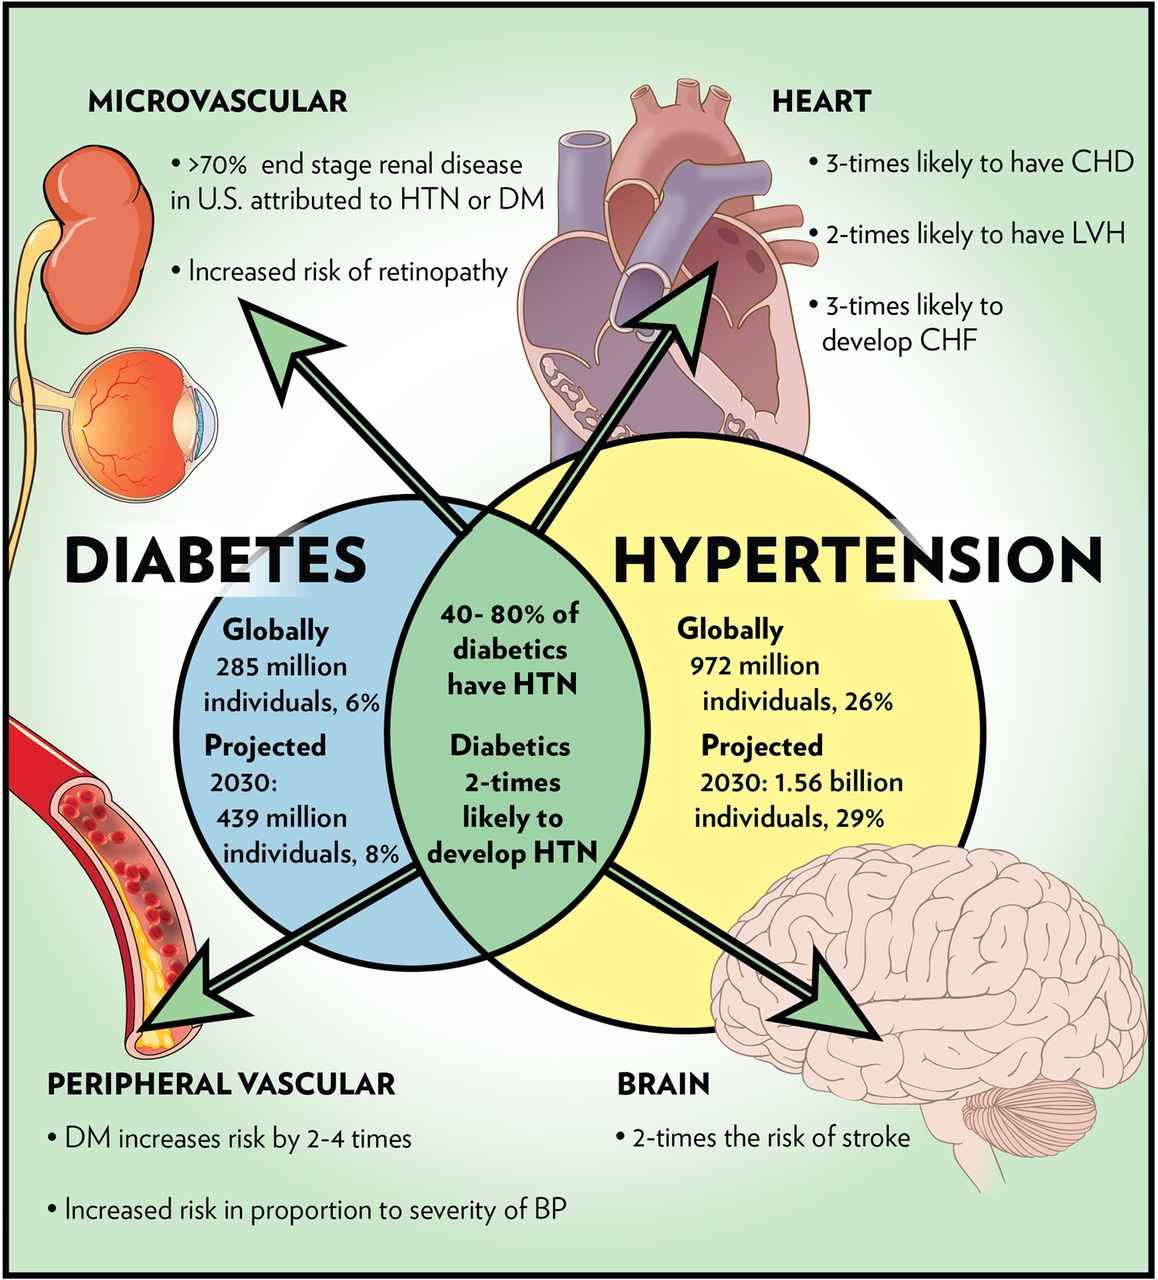 Controlling Hypertension in Patients with Diabetes